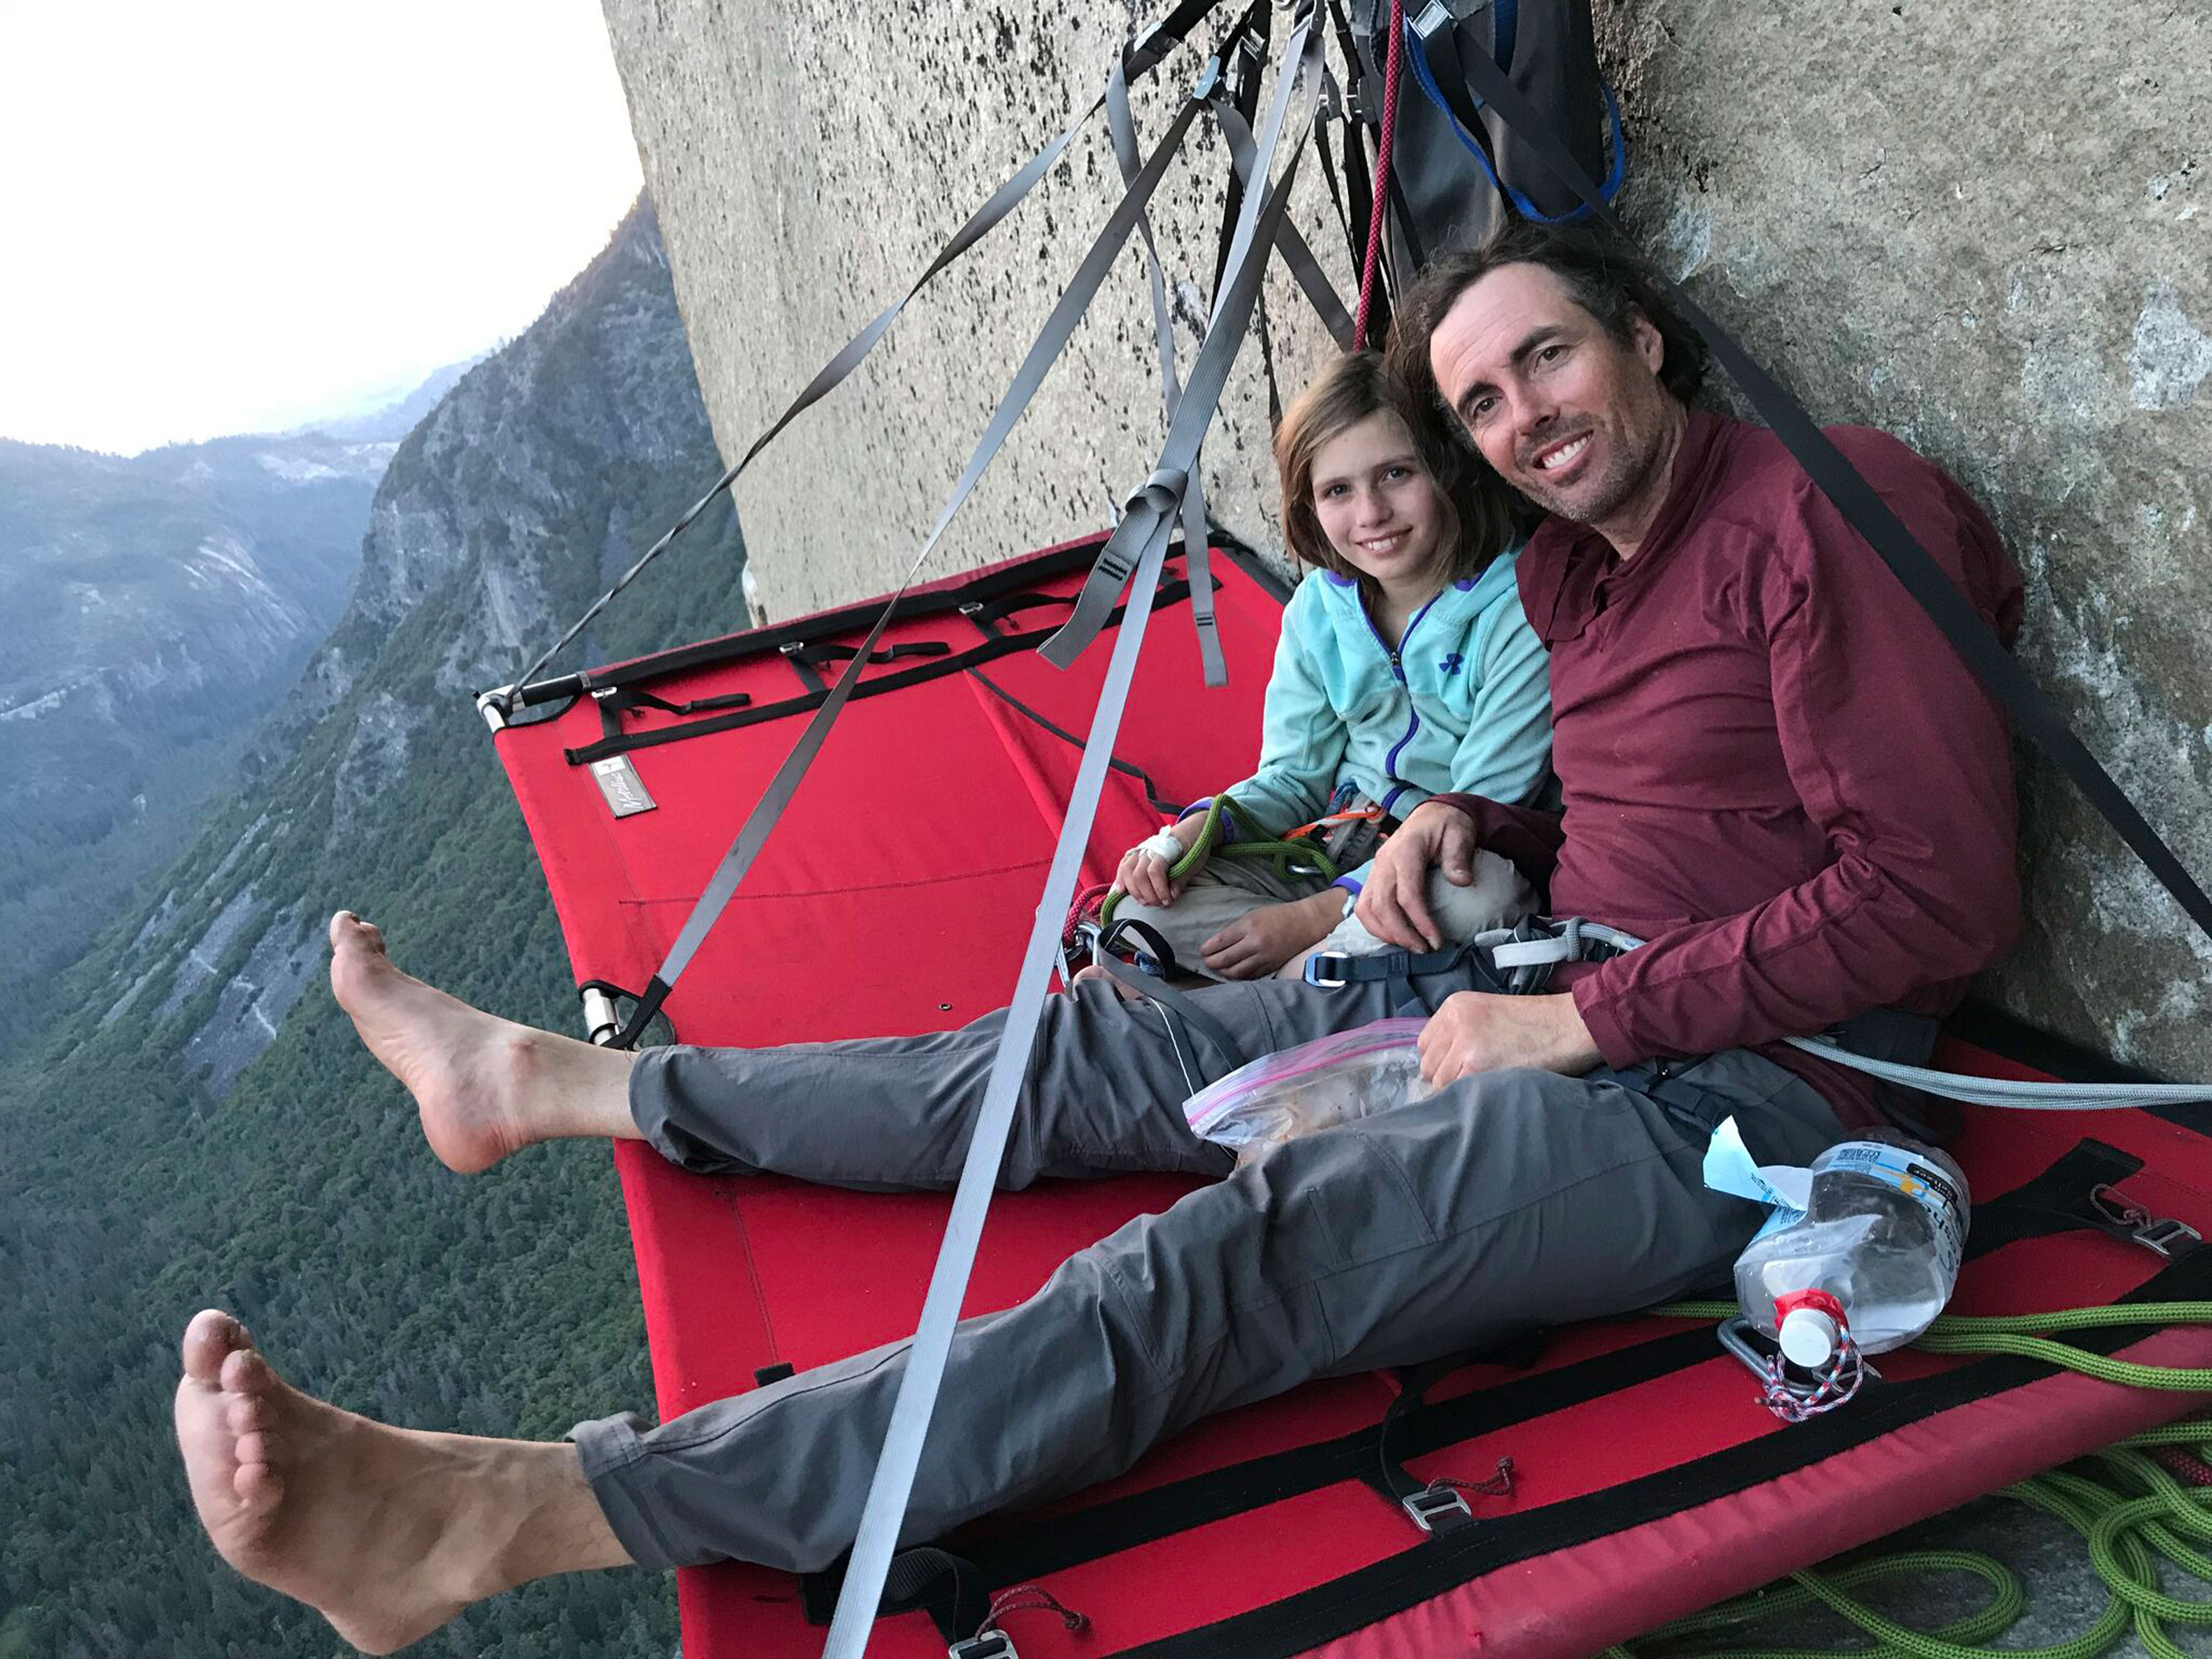 Photo: 10-yr-old Climbs El Capitan 1 | Michael and Selah Schneiter - AP